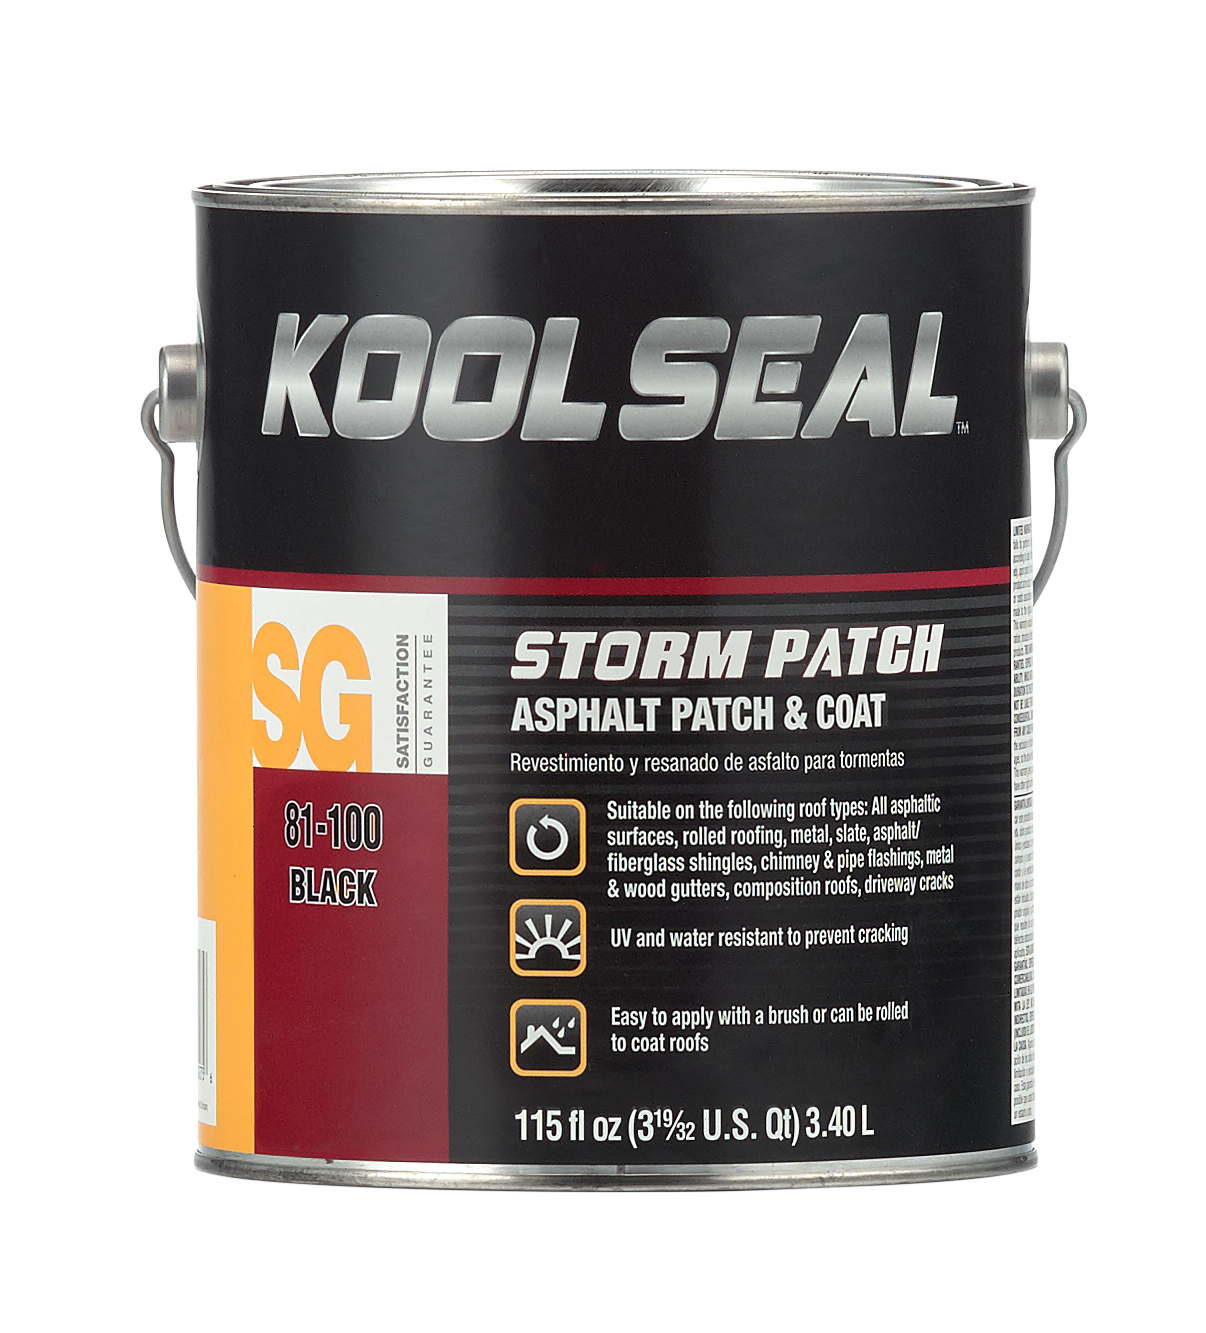 Asphalt Patch Amp Coat Koolseal